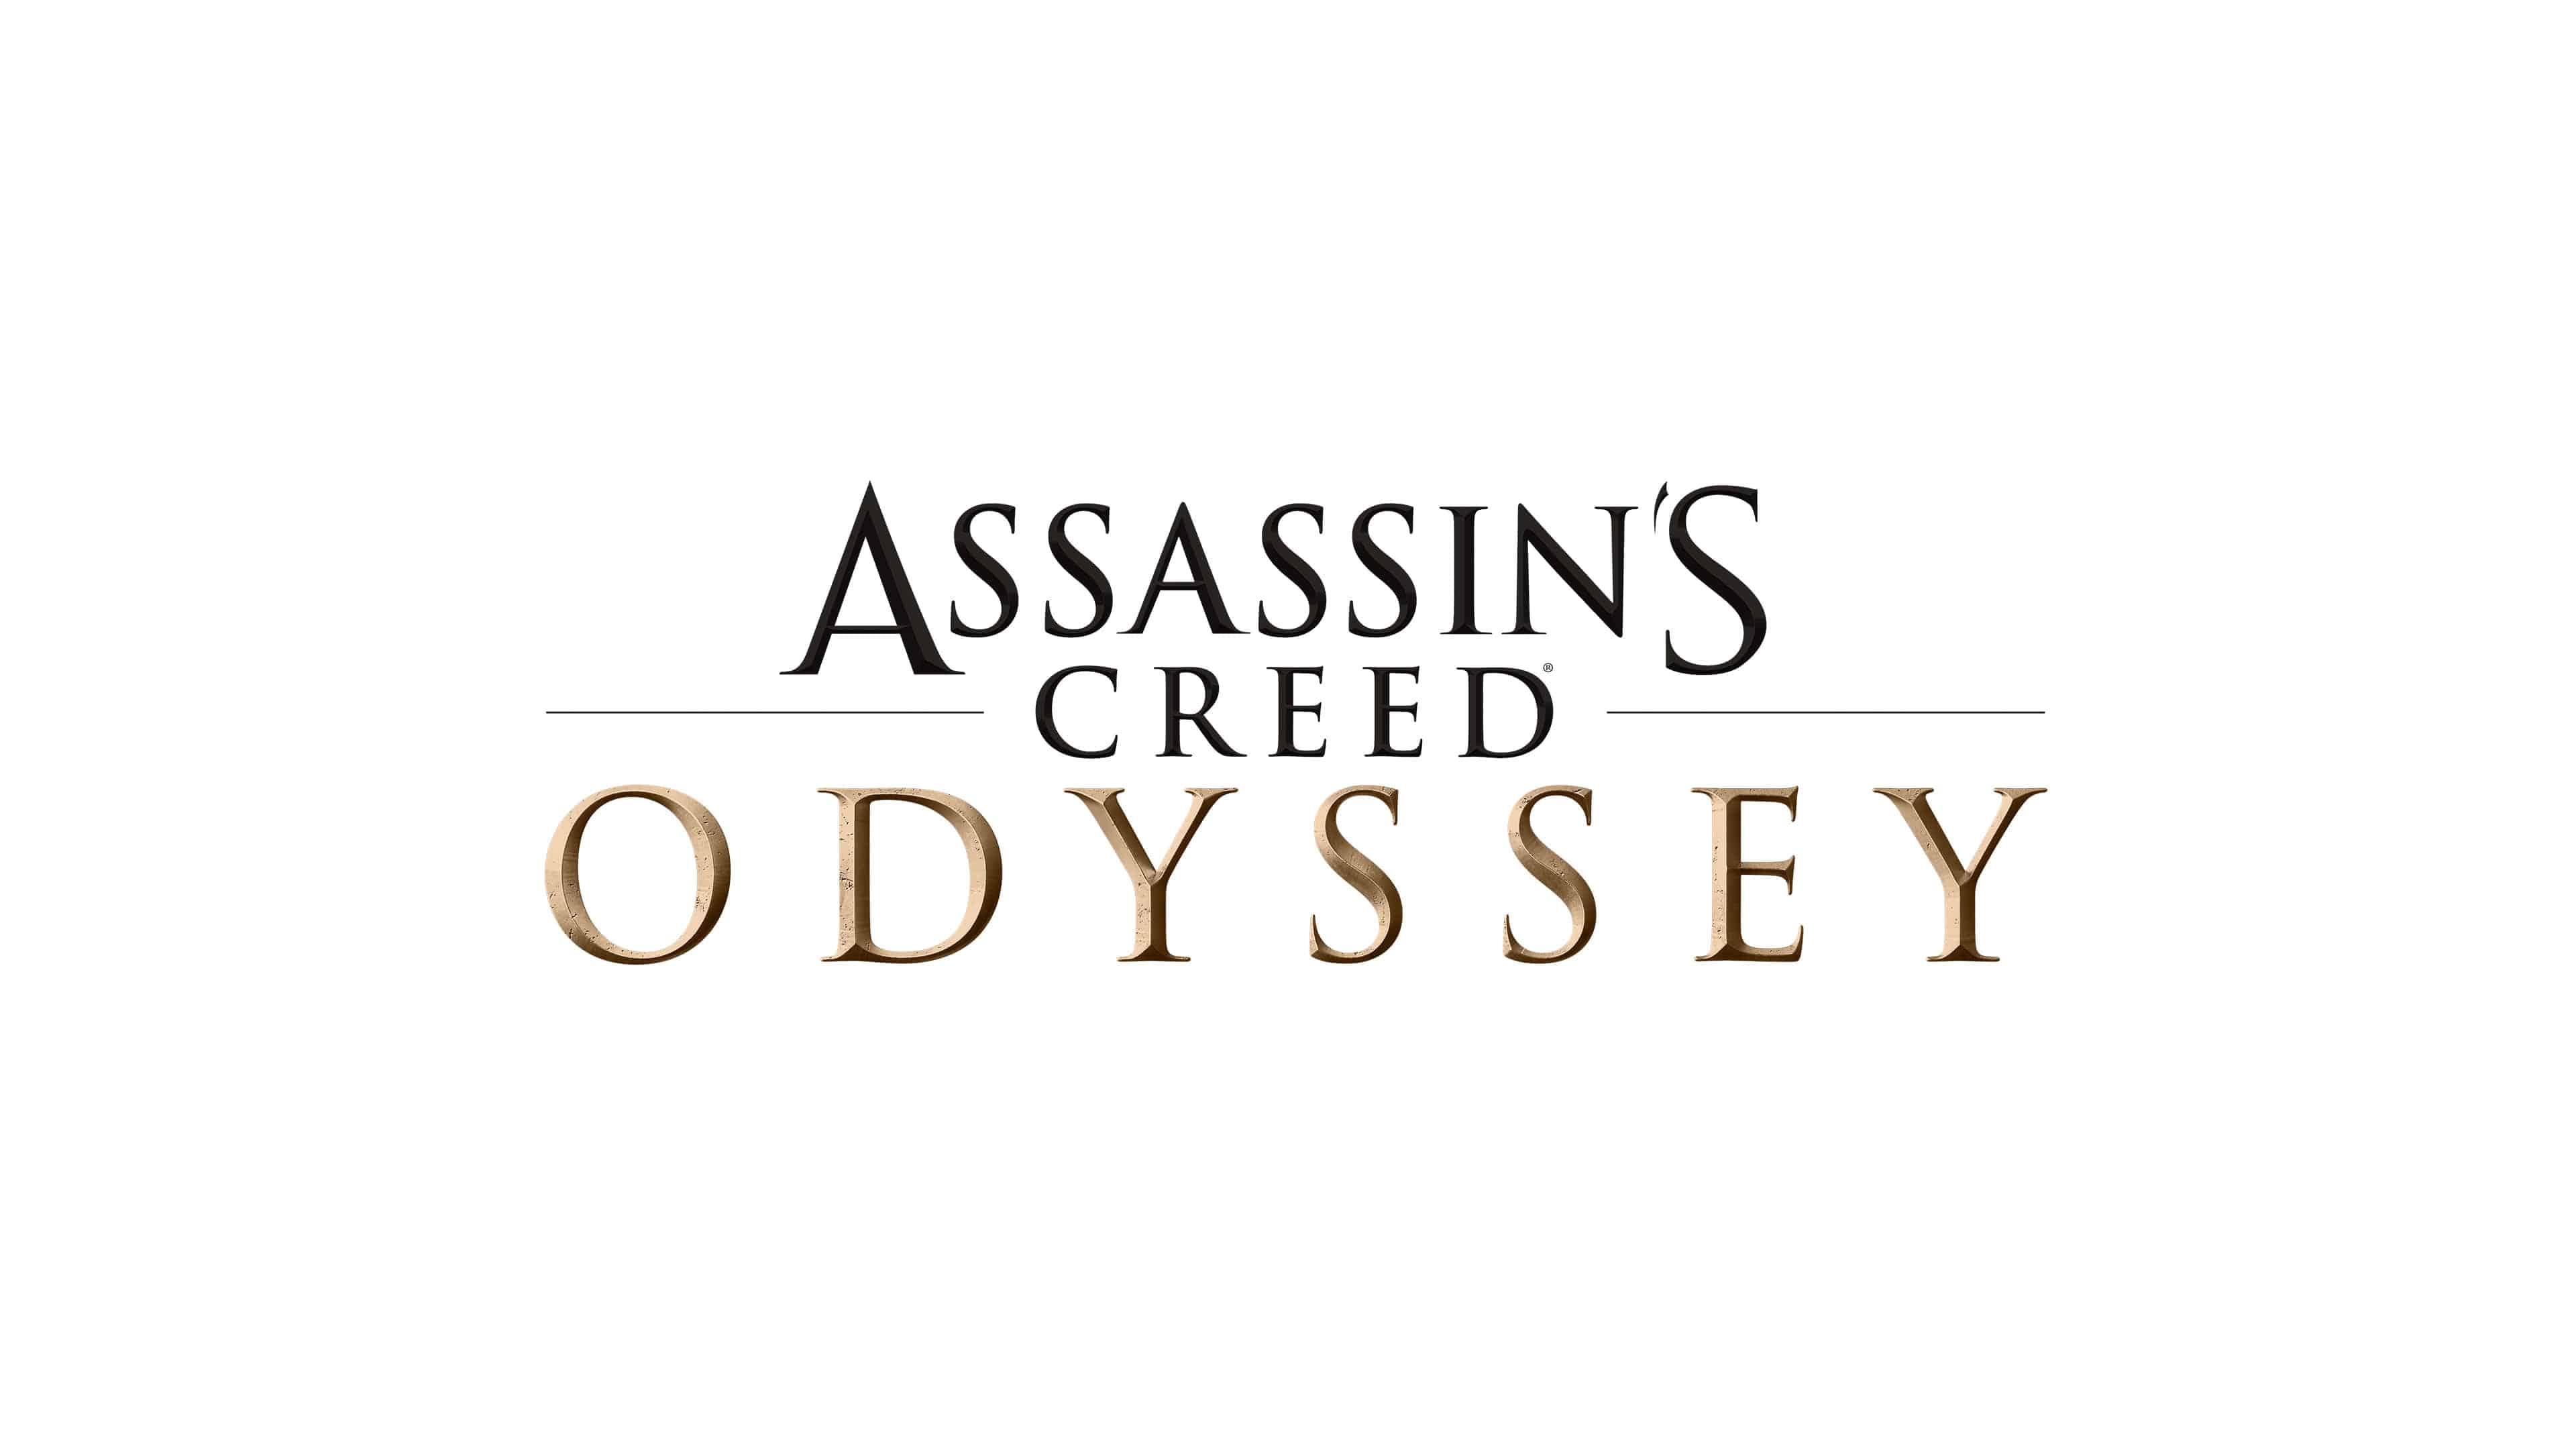 Assasins Creed Odyssey Logo Uhd 4k Wallpaper Pixelz Cc